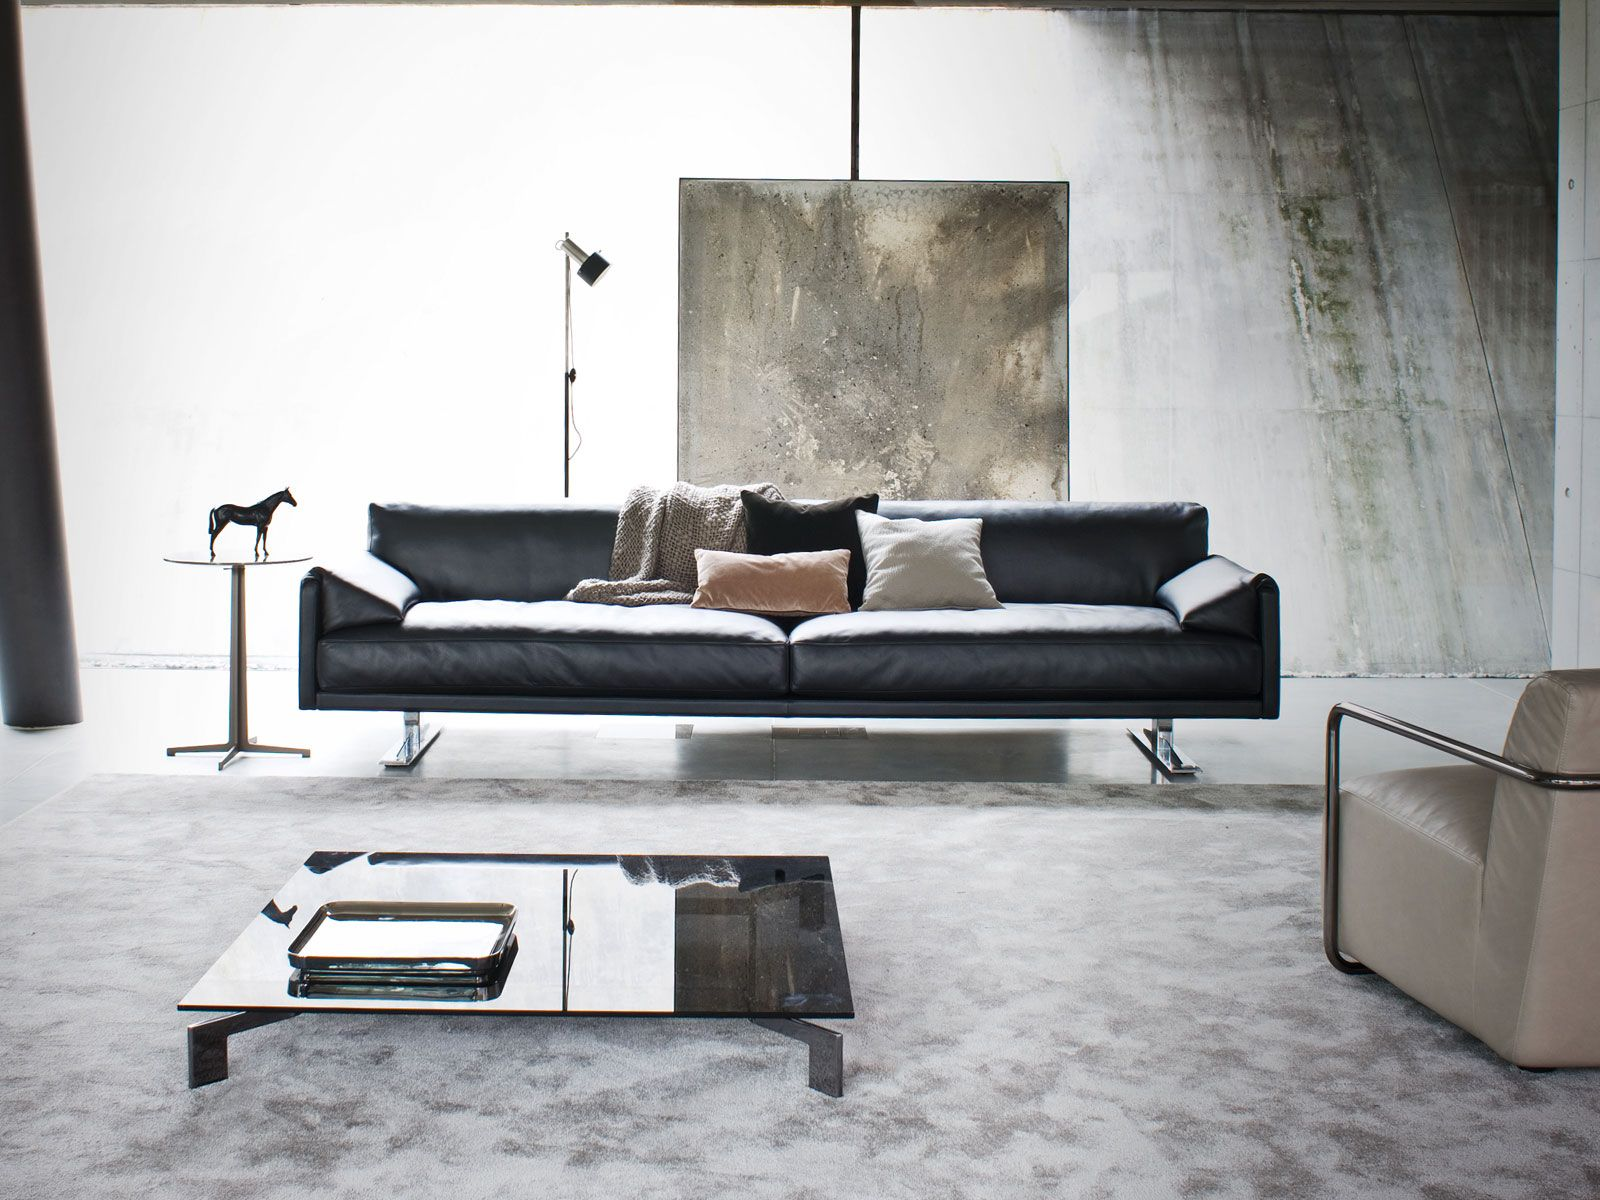 Contemporary Sofas Highest Quality Designer Sofas And Living Room Chairs Living Space Luxury Sofa Design Sofa Design Luxury Sofa